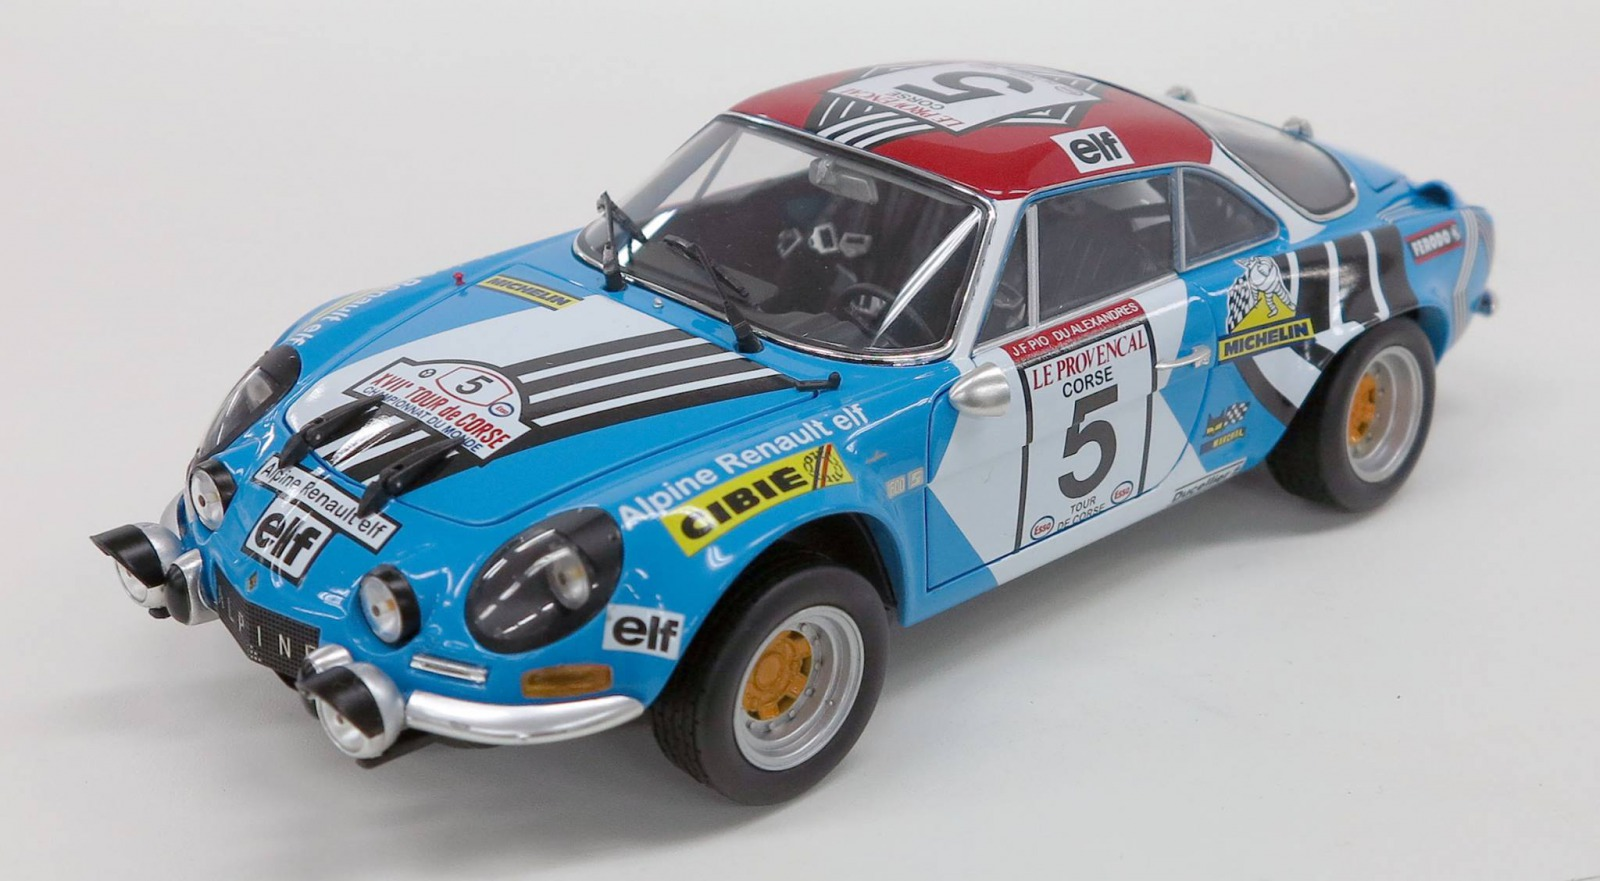 Kyosho 1:18スケール ダイキャストモデル 1973年ツール・ド・コルス ルノー アルピーヌ A110 No.51973 Renault Alpine A110 #5 Tour de Corse Jean-Luc Thrier 1/18 by Kyosho 京商